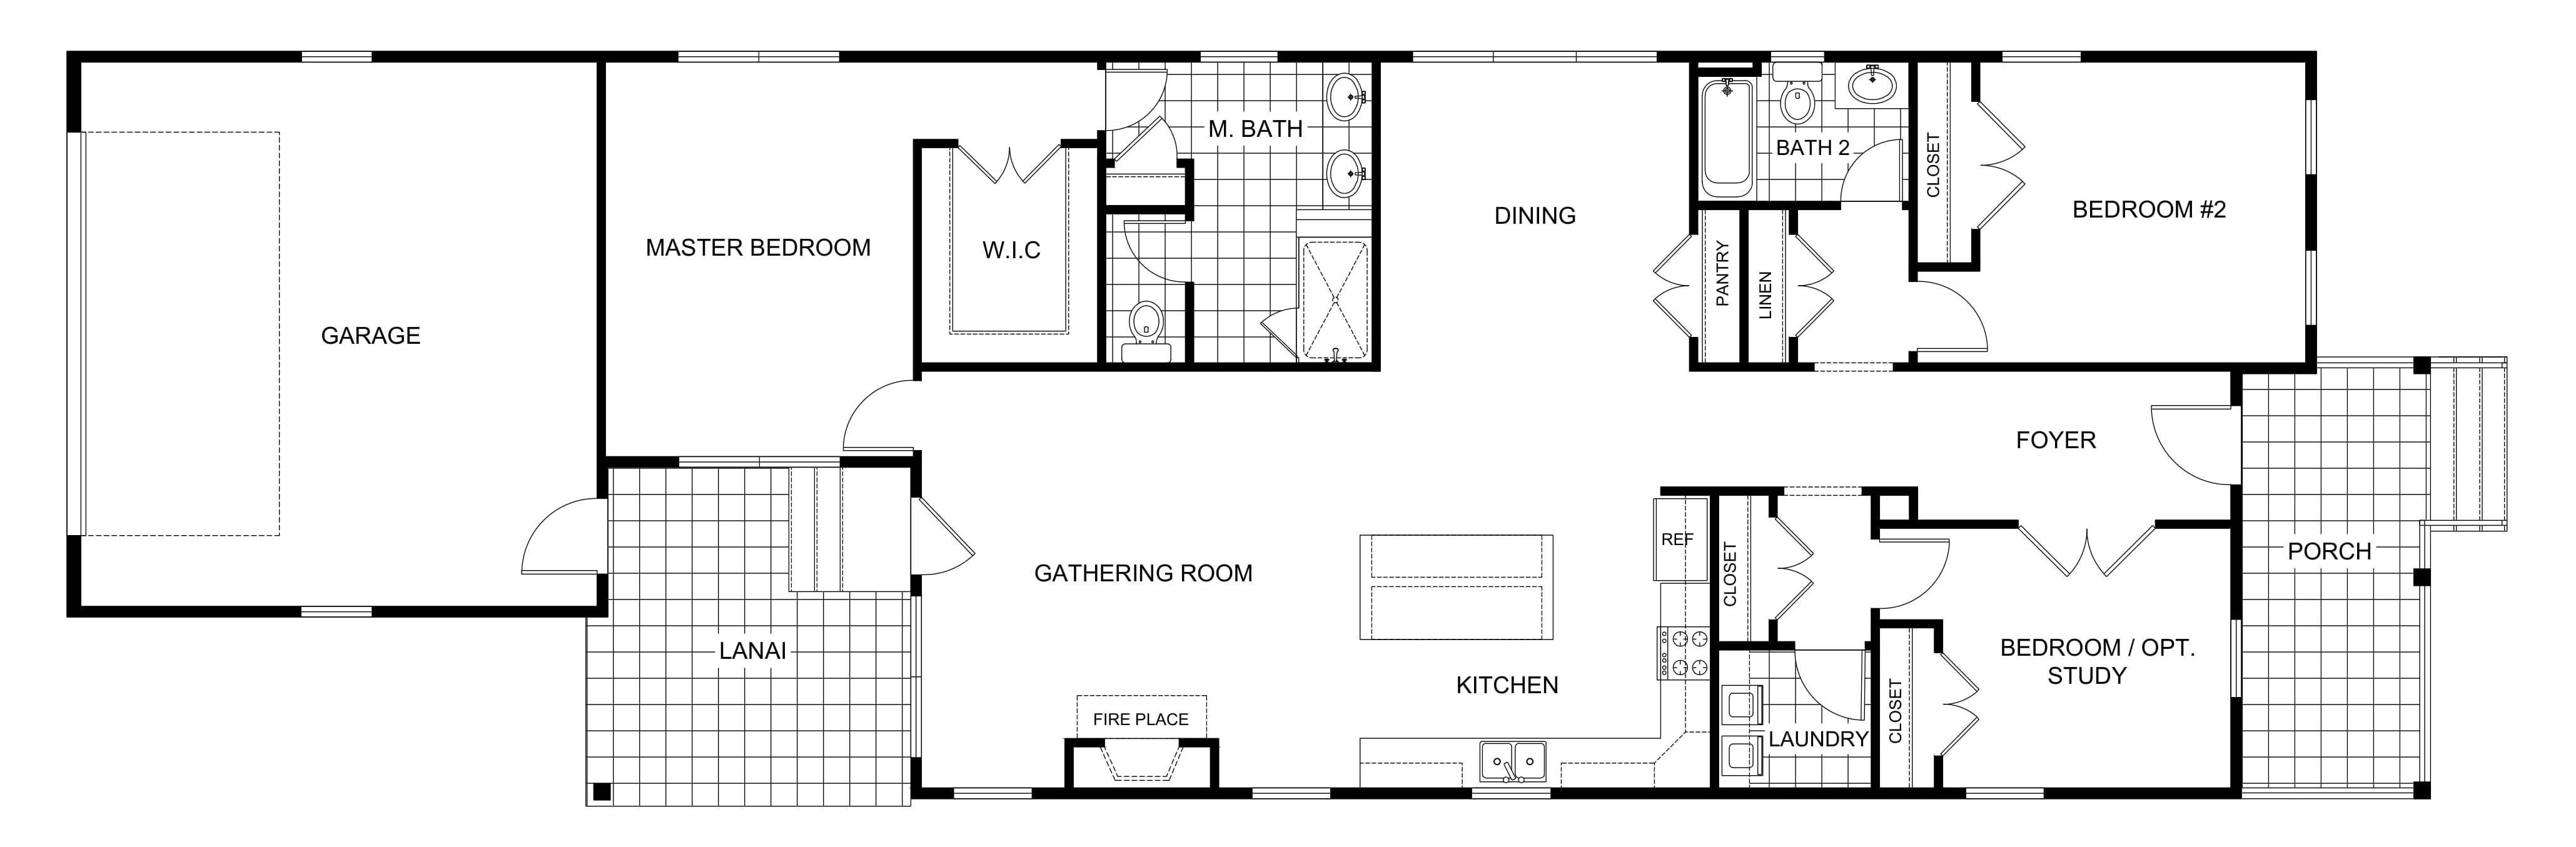 Convert Floor Plan To 2d Make More Presentable Listings Floor Plans Architectural Floor Plans Home Design Plan